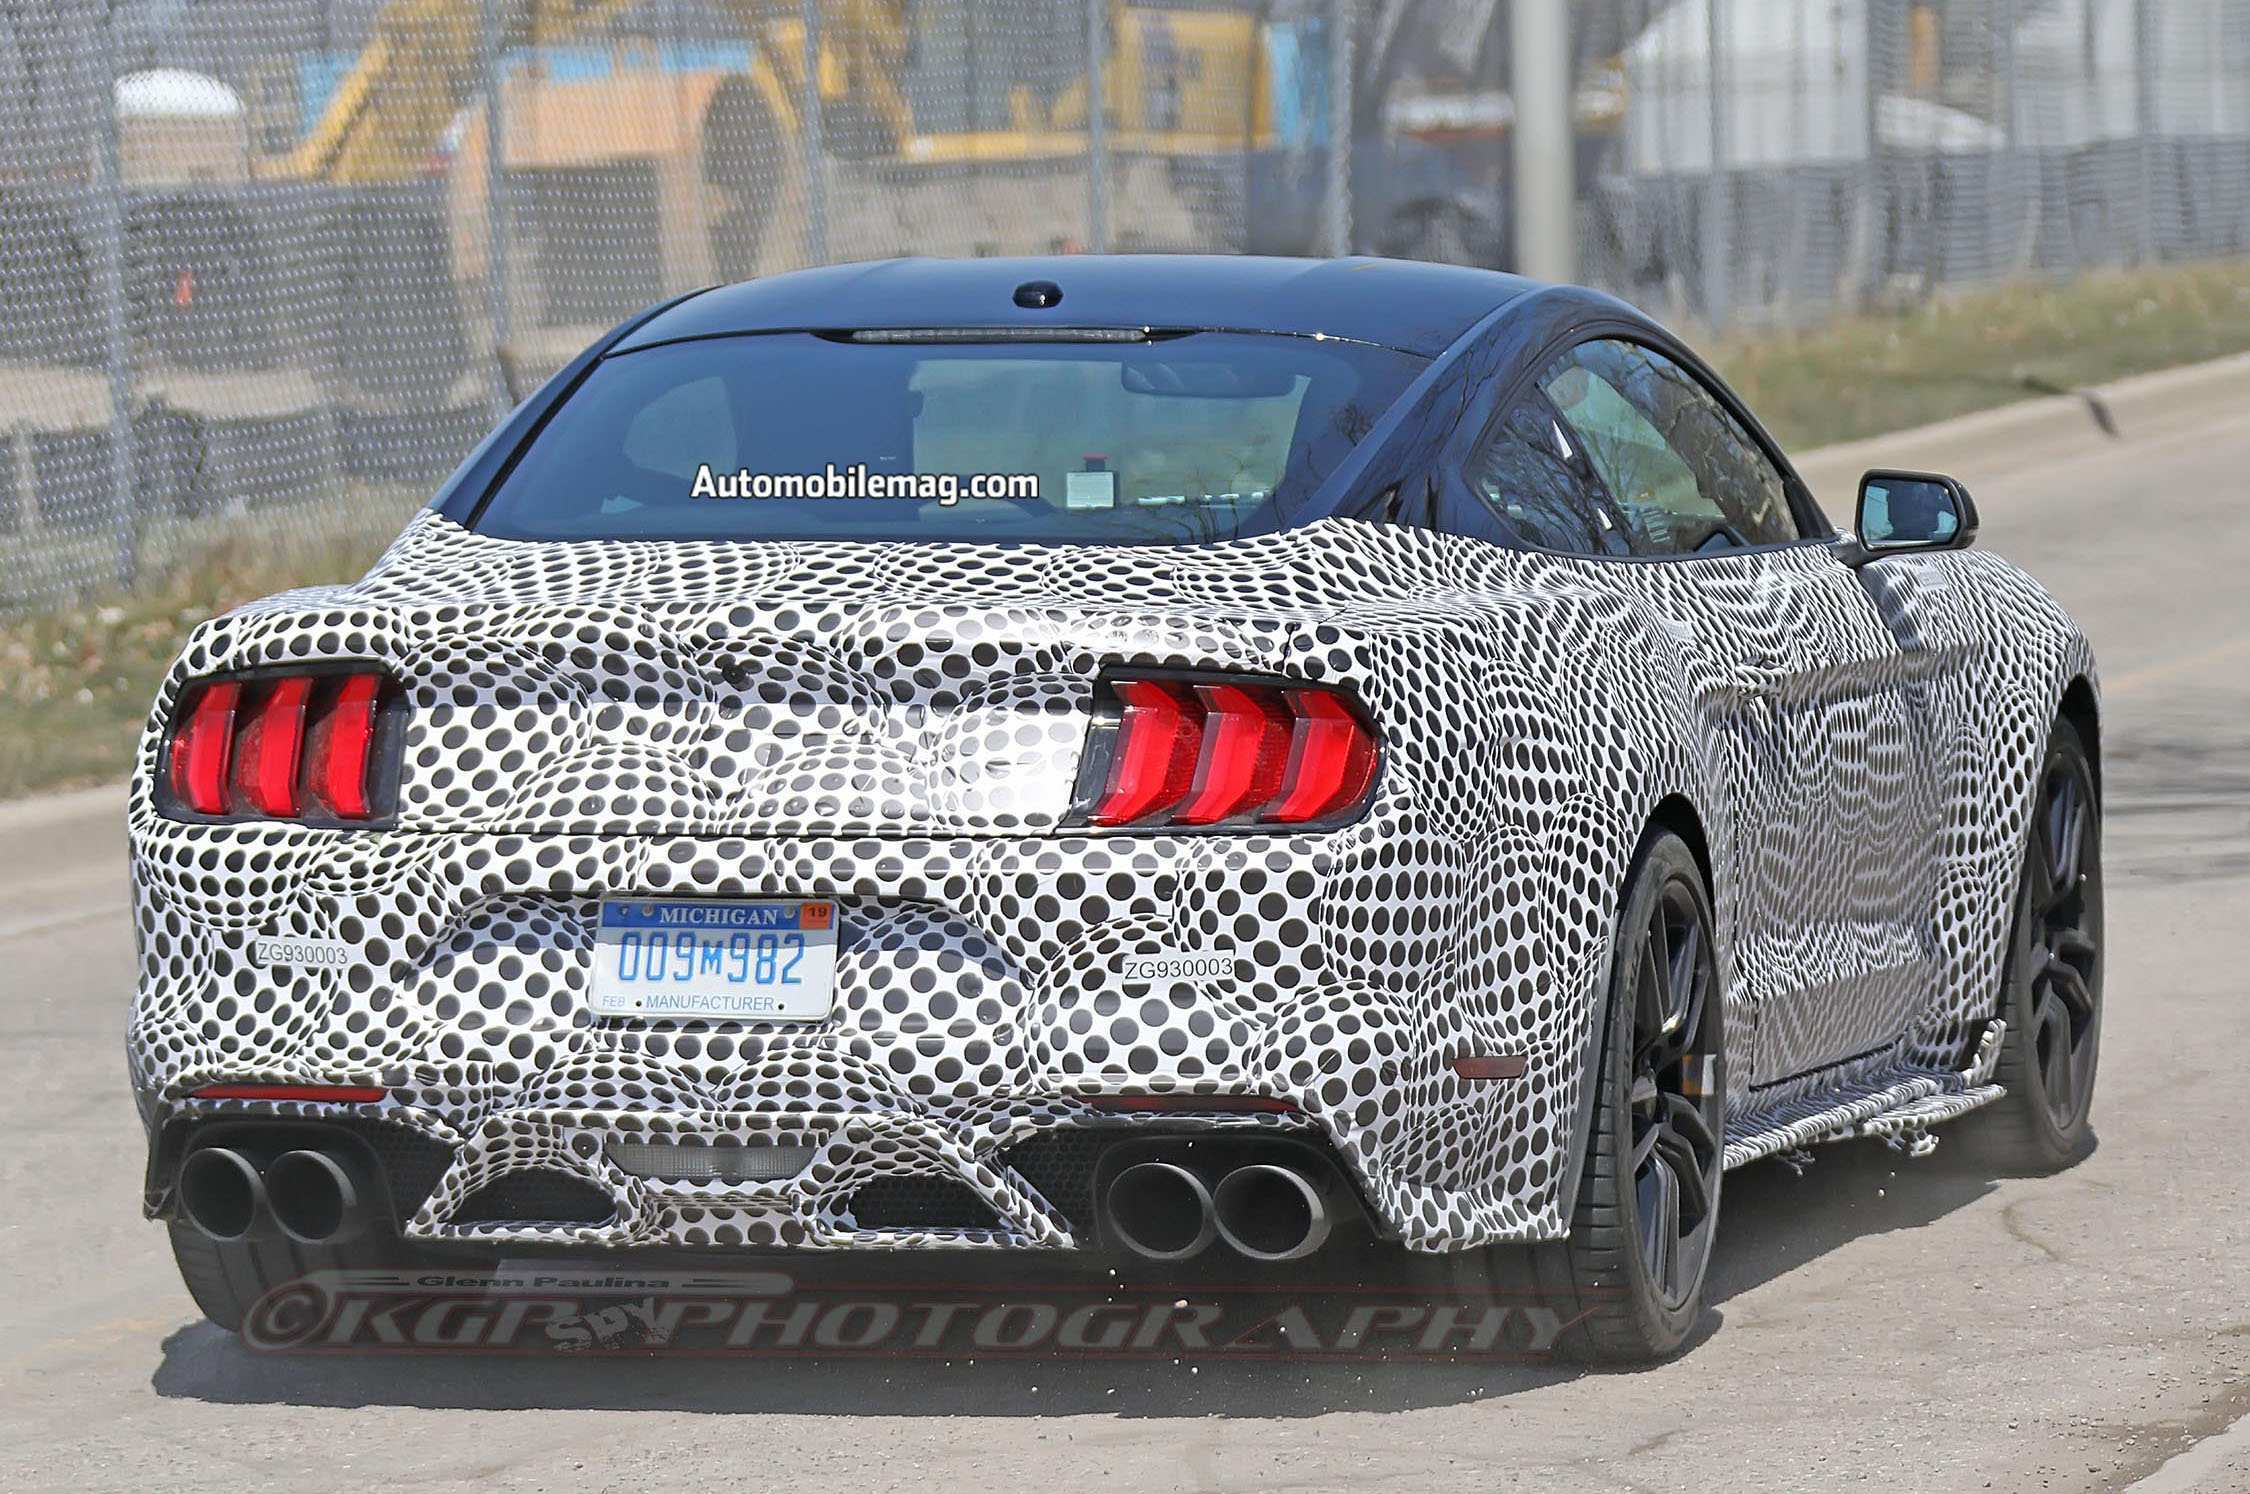 97 Gallery of Spy Shots 2020 Ford Mustang Svt Gt 500 Price for Spy Shots 2020 Ford Mustang Svt Gt 500